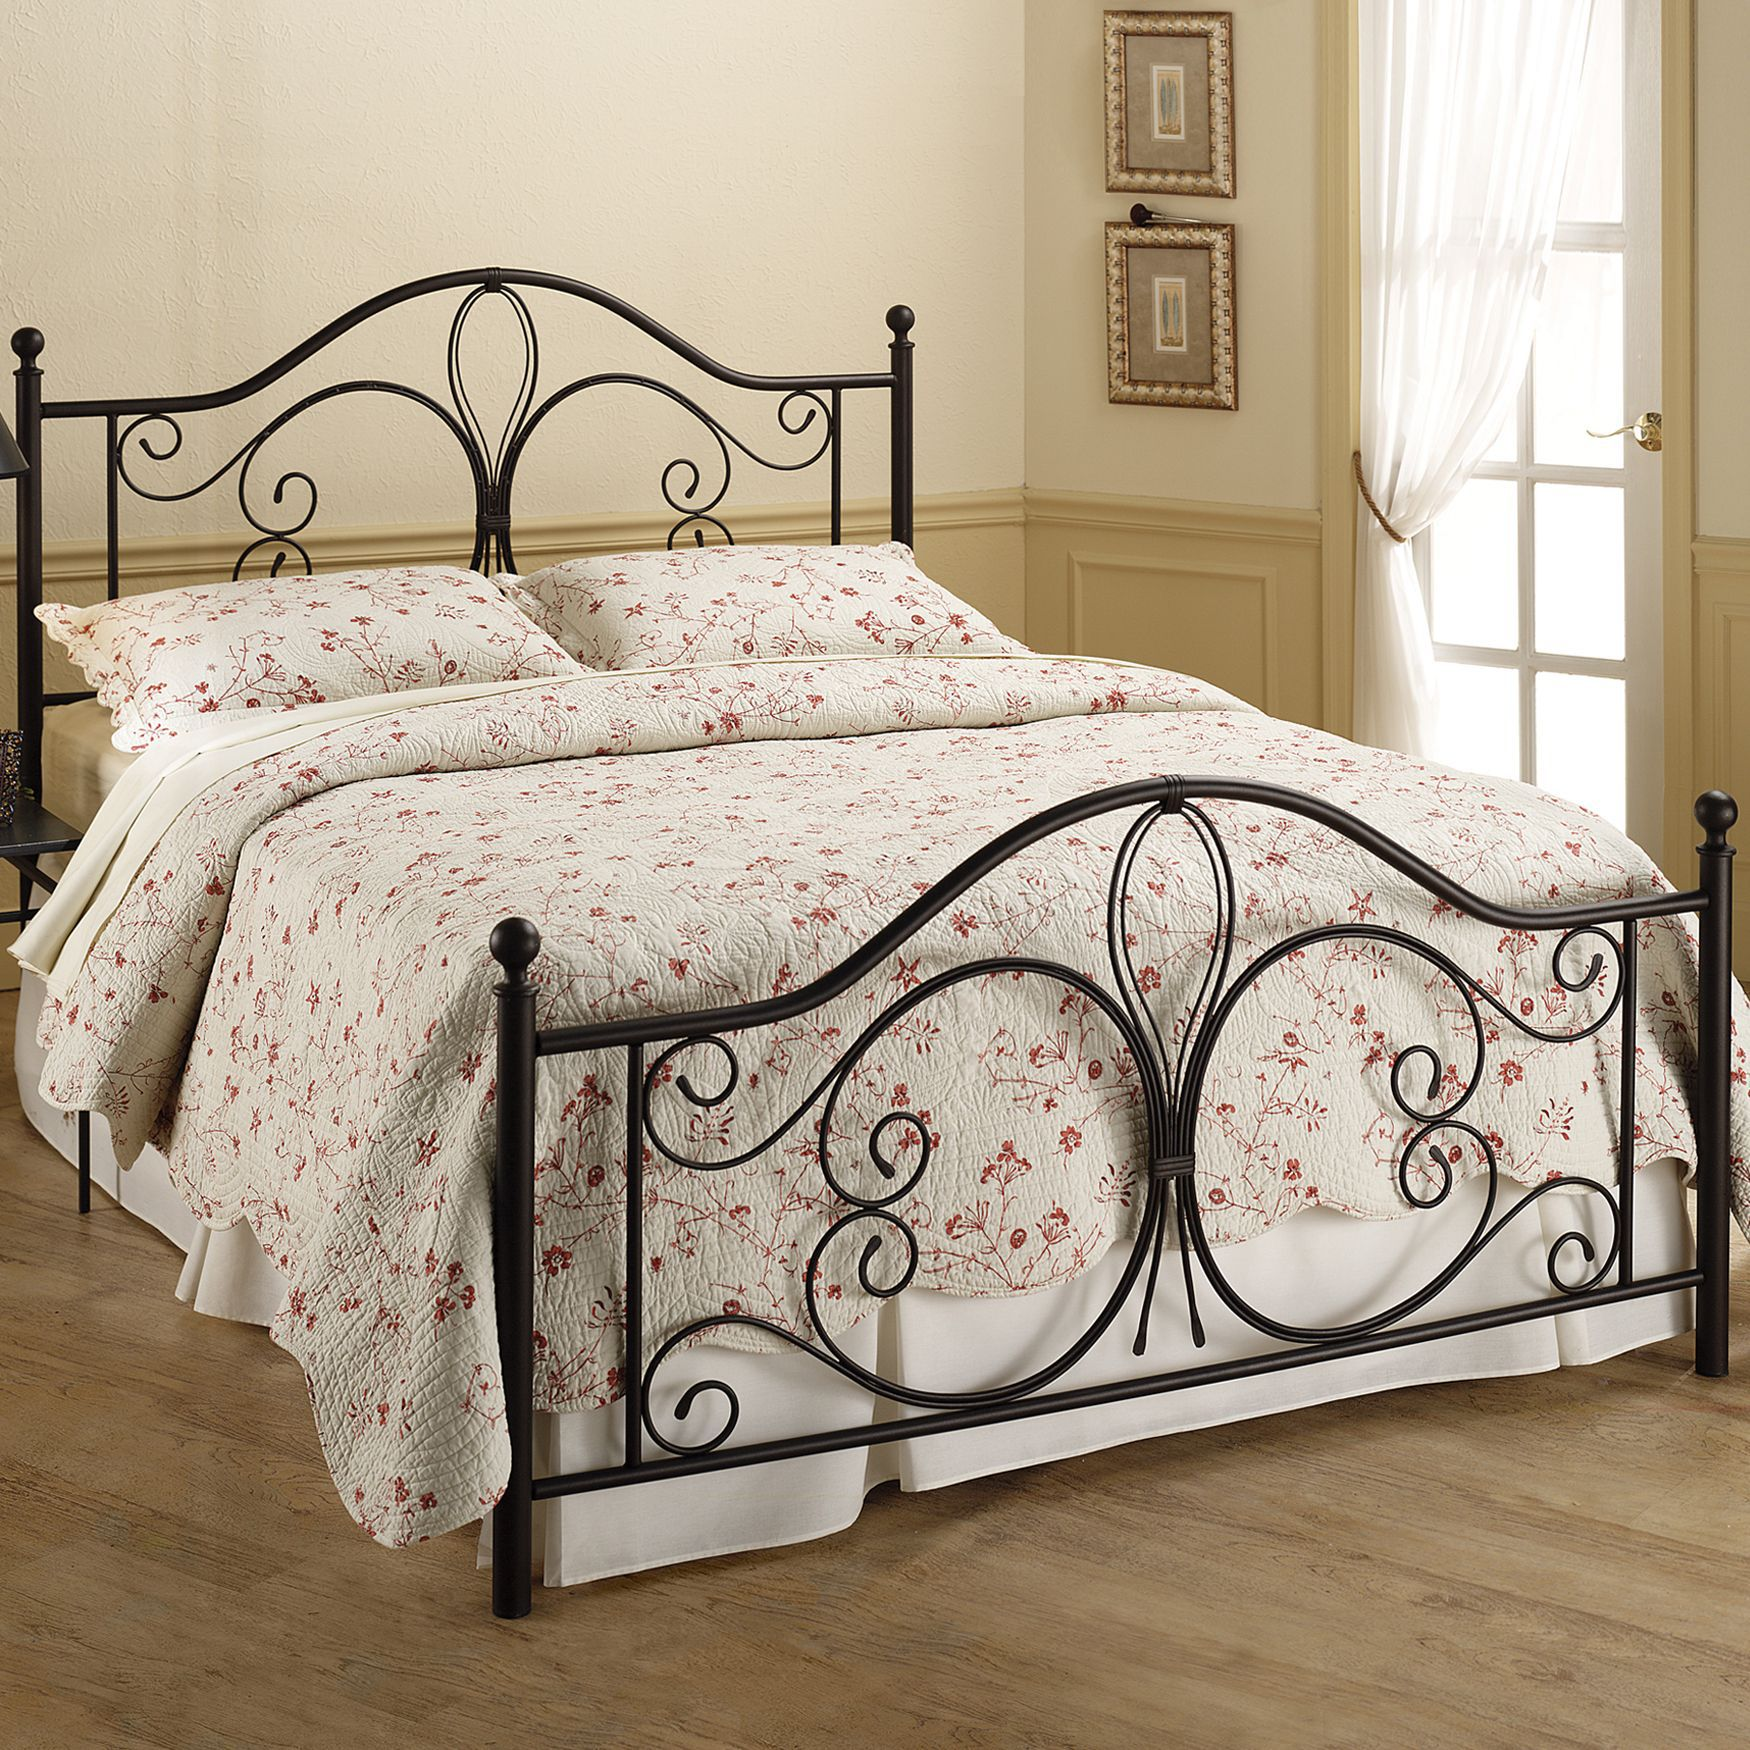 "Queen Bed Set with Bed Frame, 83½""Lx61½""Wx49½""H, ANTIQUE BROWN"